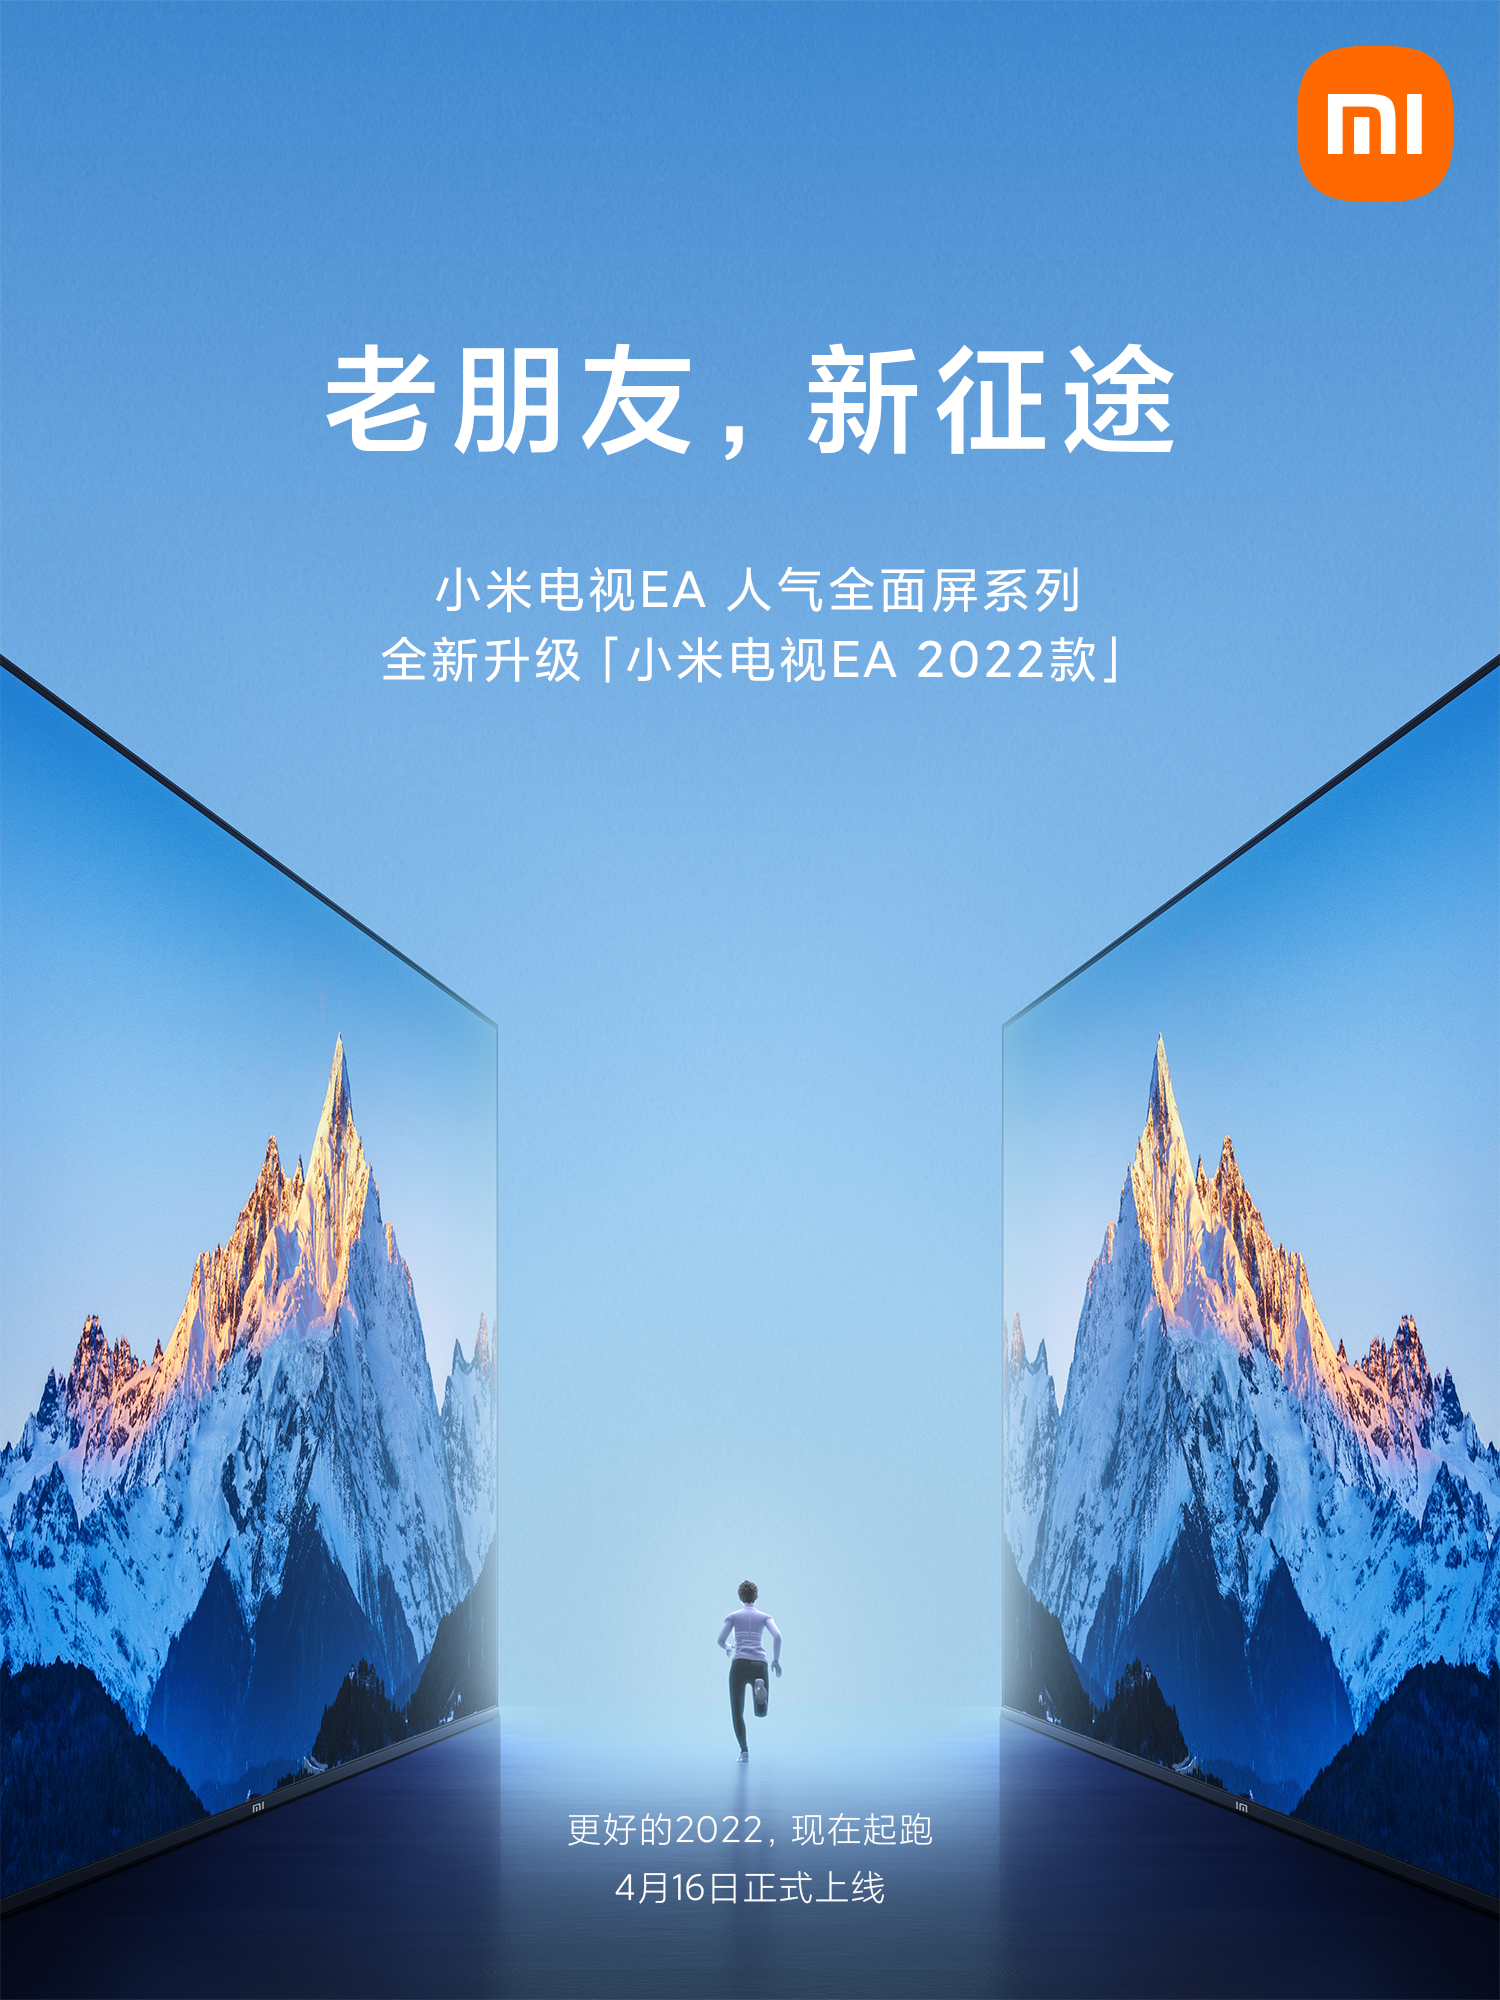 Xiaomi announces the Mi TV EA 2022, a new series of televisions with updated design